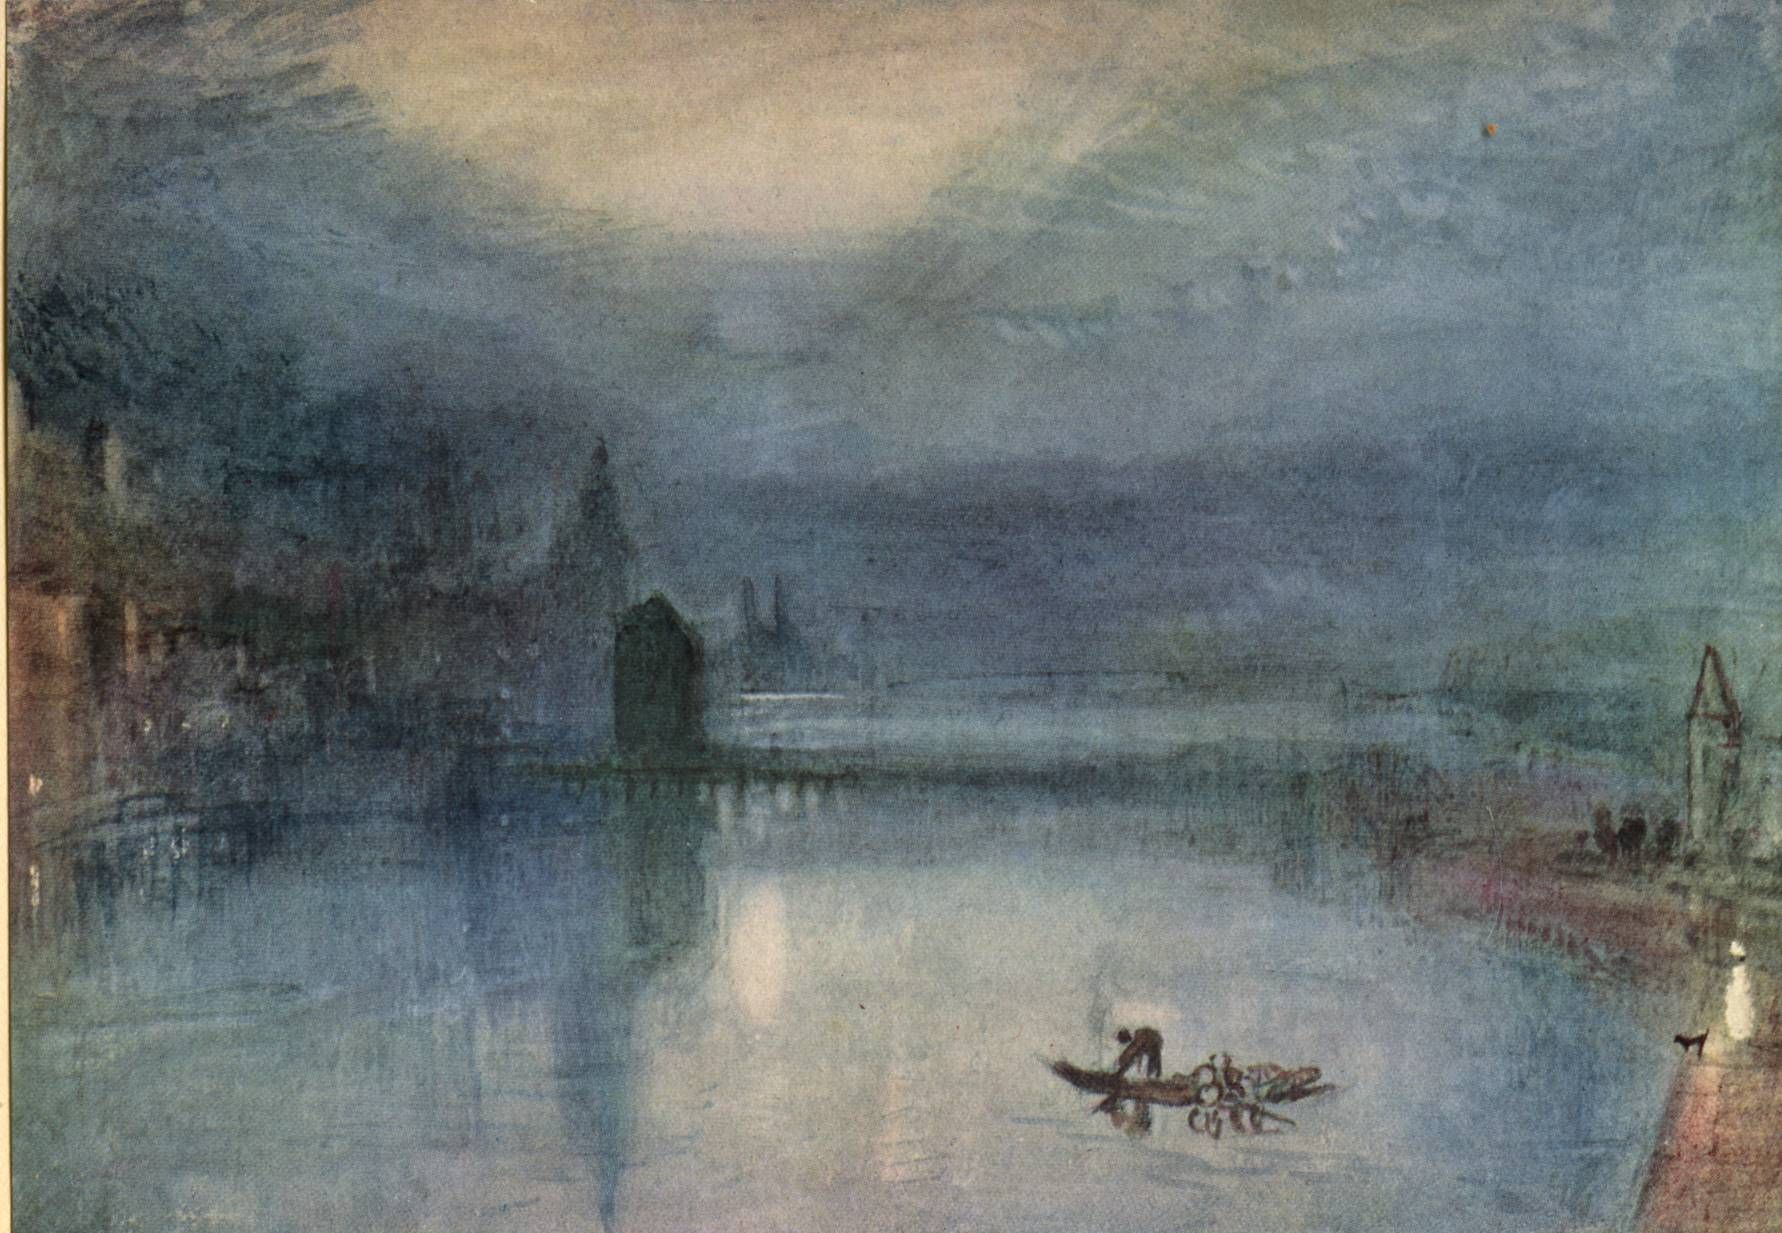 Turner Watercolors Evening By Joseph Mallord William Turner